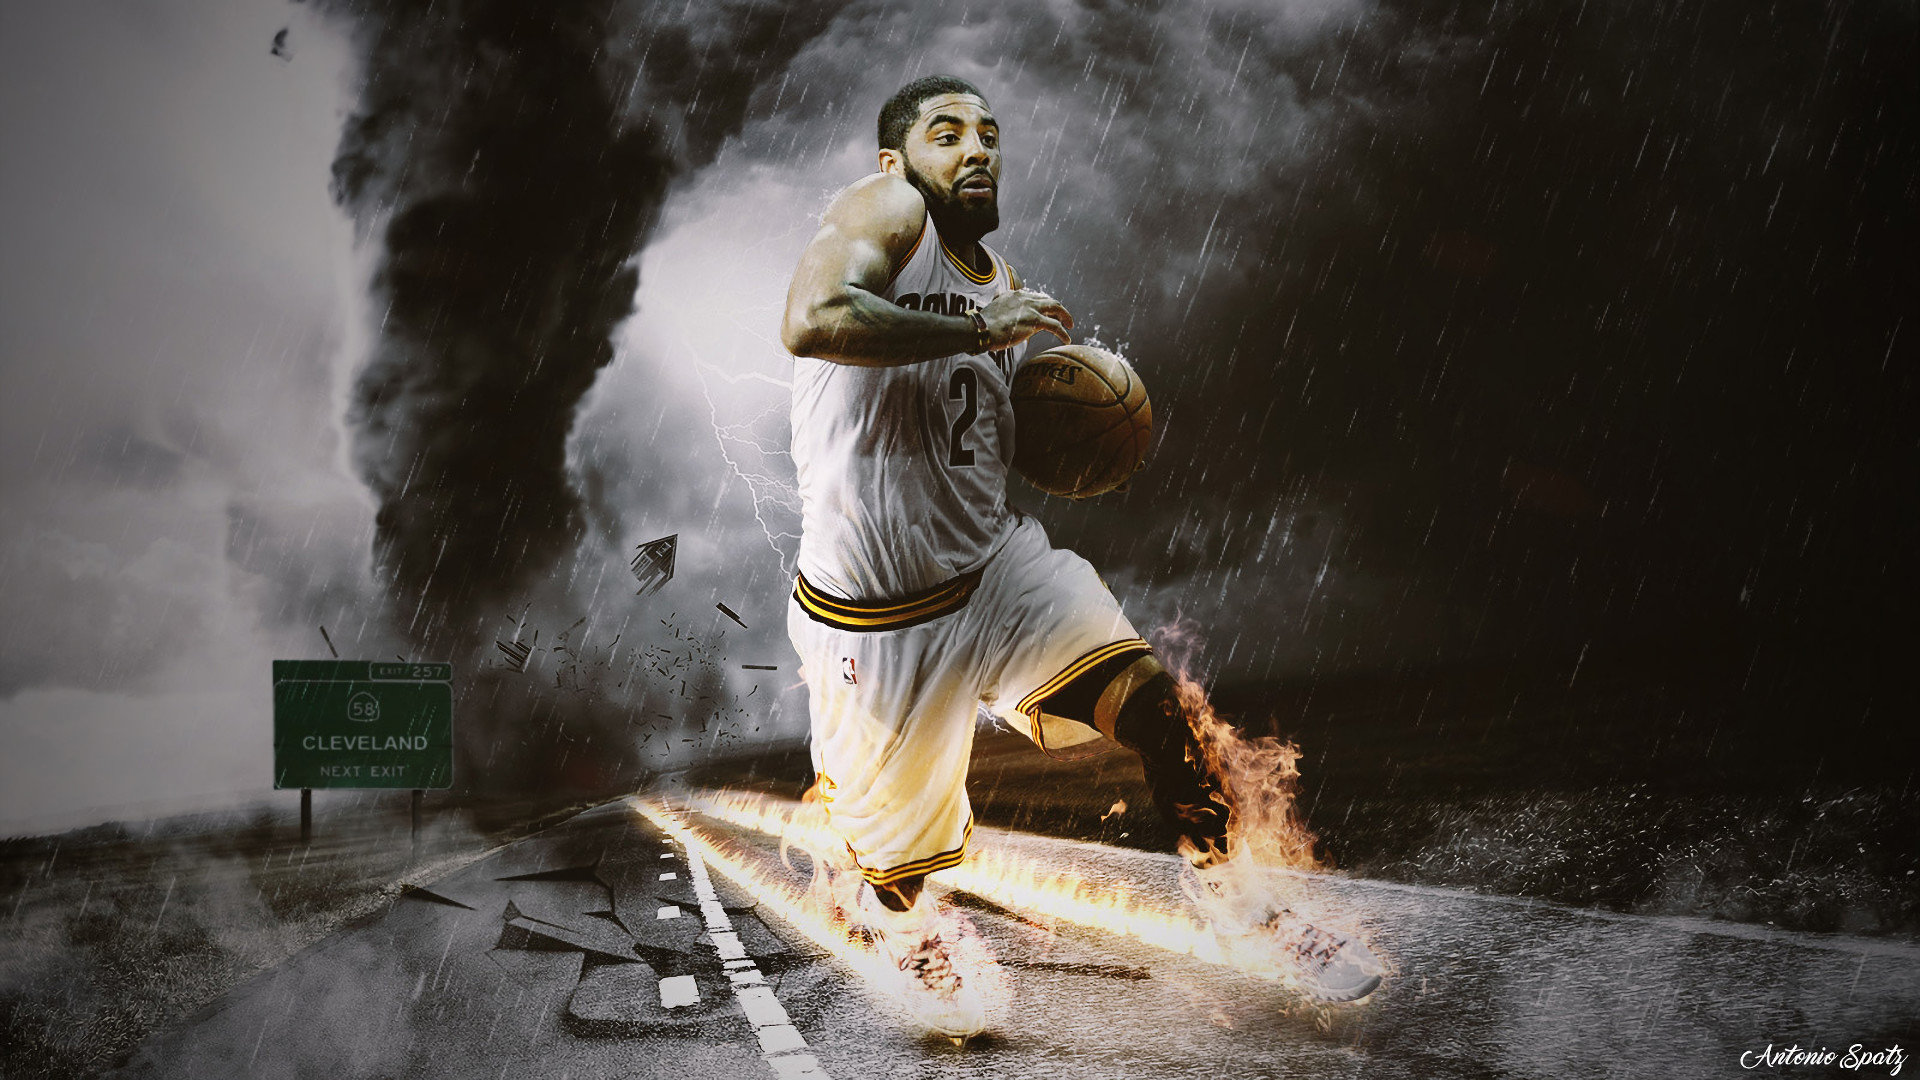 Free Kyrie Irving High Quality Wallpaper Id - Kyrie Irving Mix , HD Wallpaper & Backgrounds